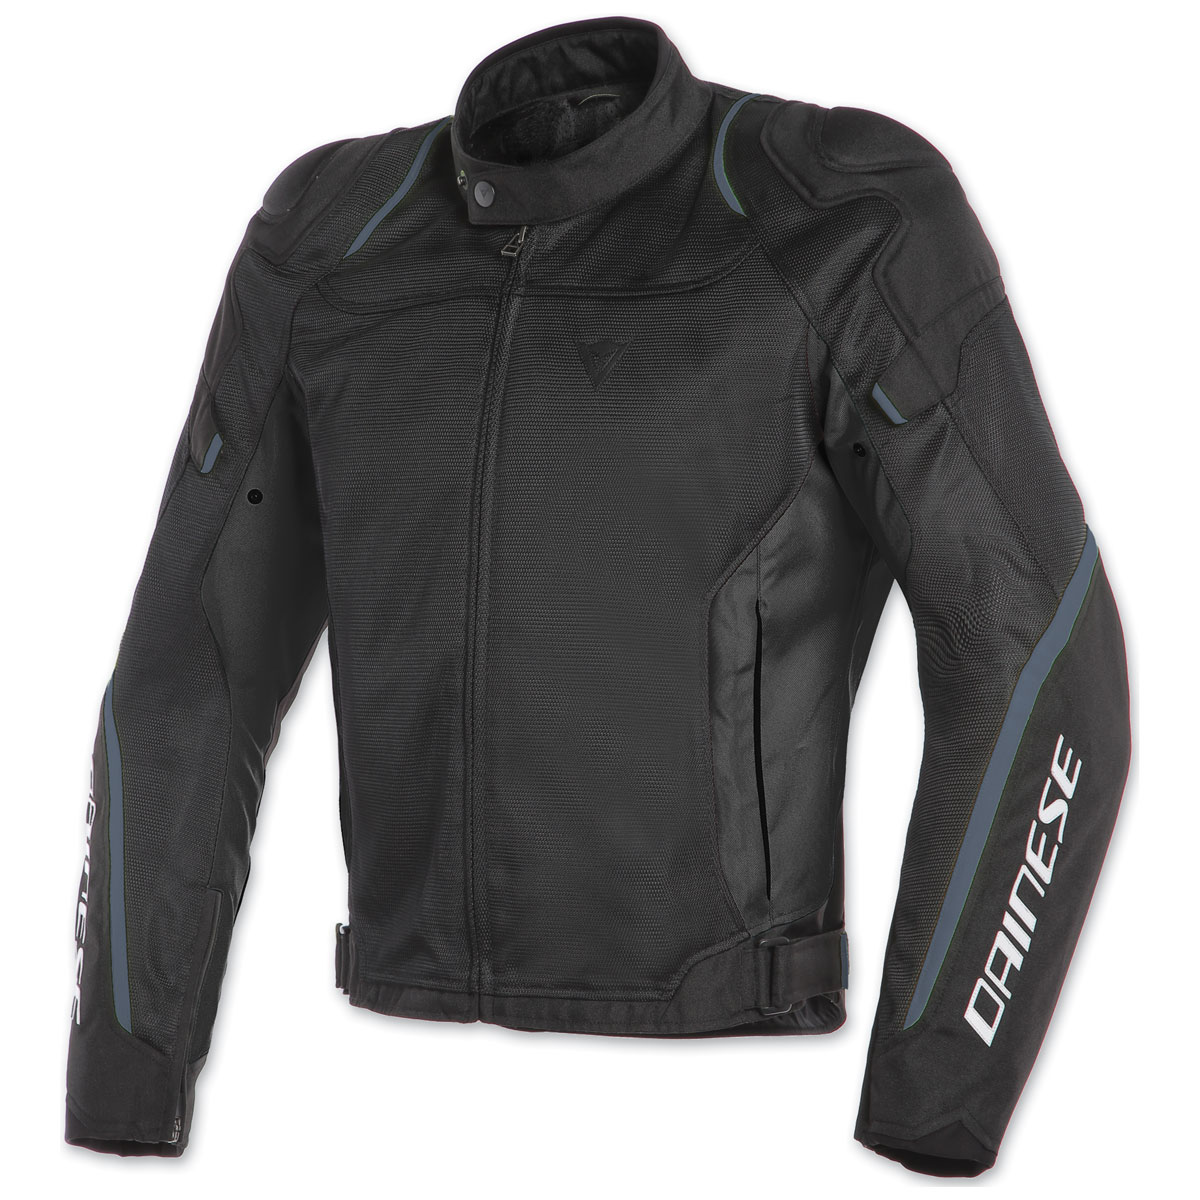 Dainese Men's Air Master Black/Black/Anthracite Textile Jacket